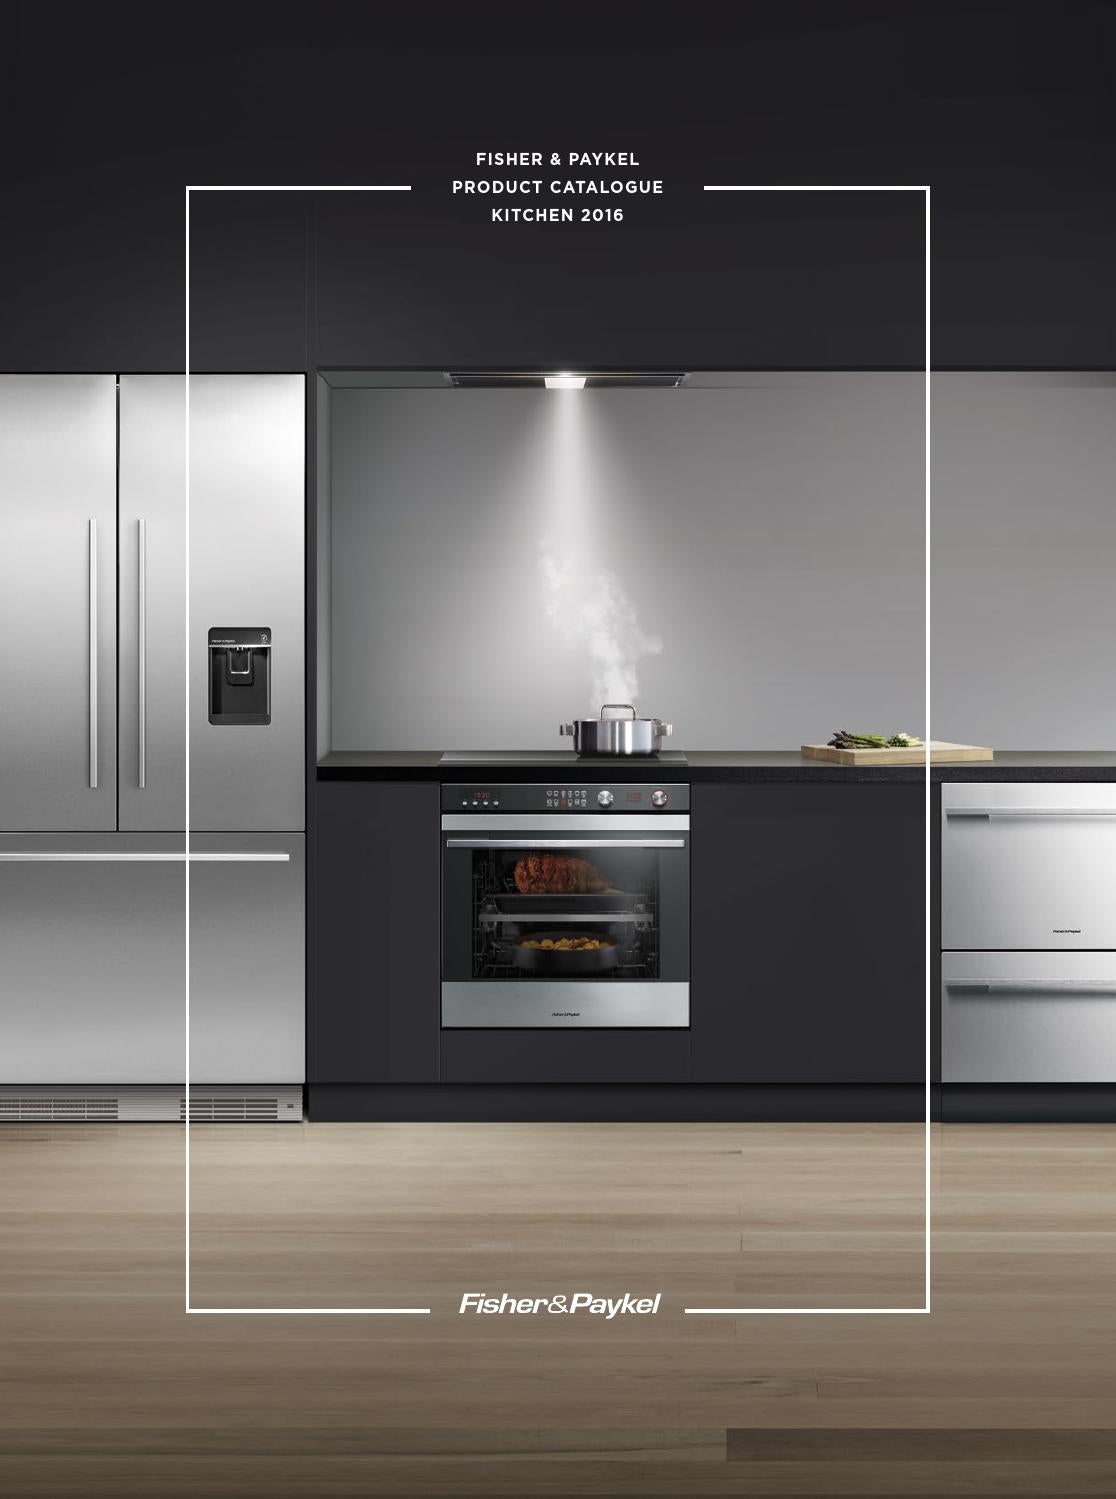 Fisher & Paykel New Zealand Product Catalogue Kitchen 2016 ...